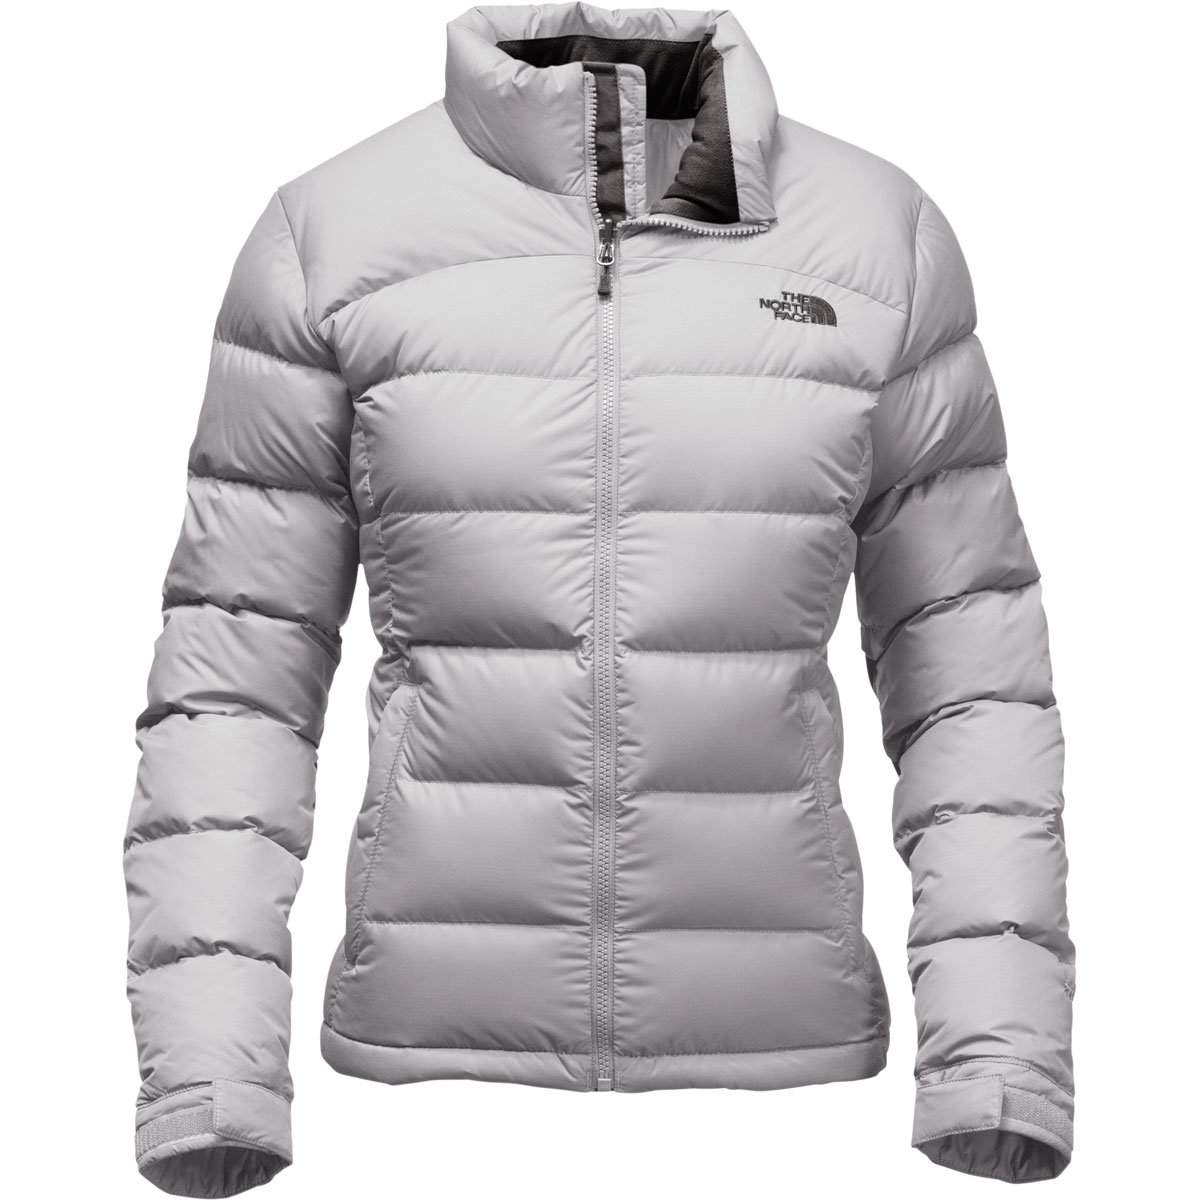 The North Face Women's Nuptse 2 Jacket Lunar Ice Grey Size Small